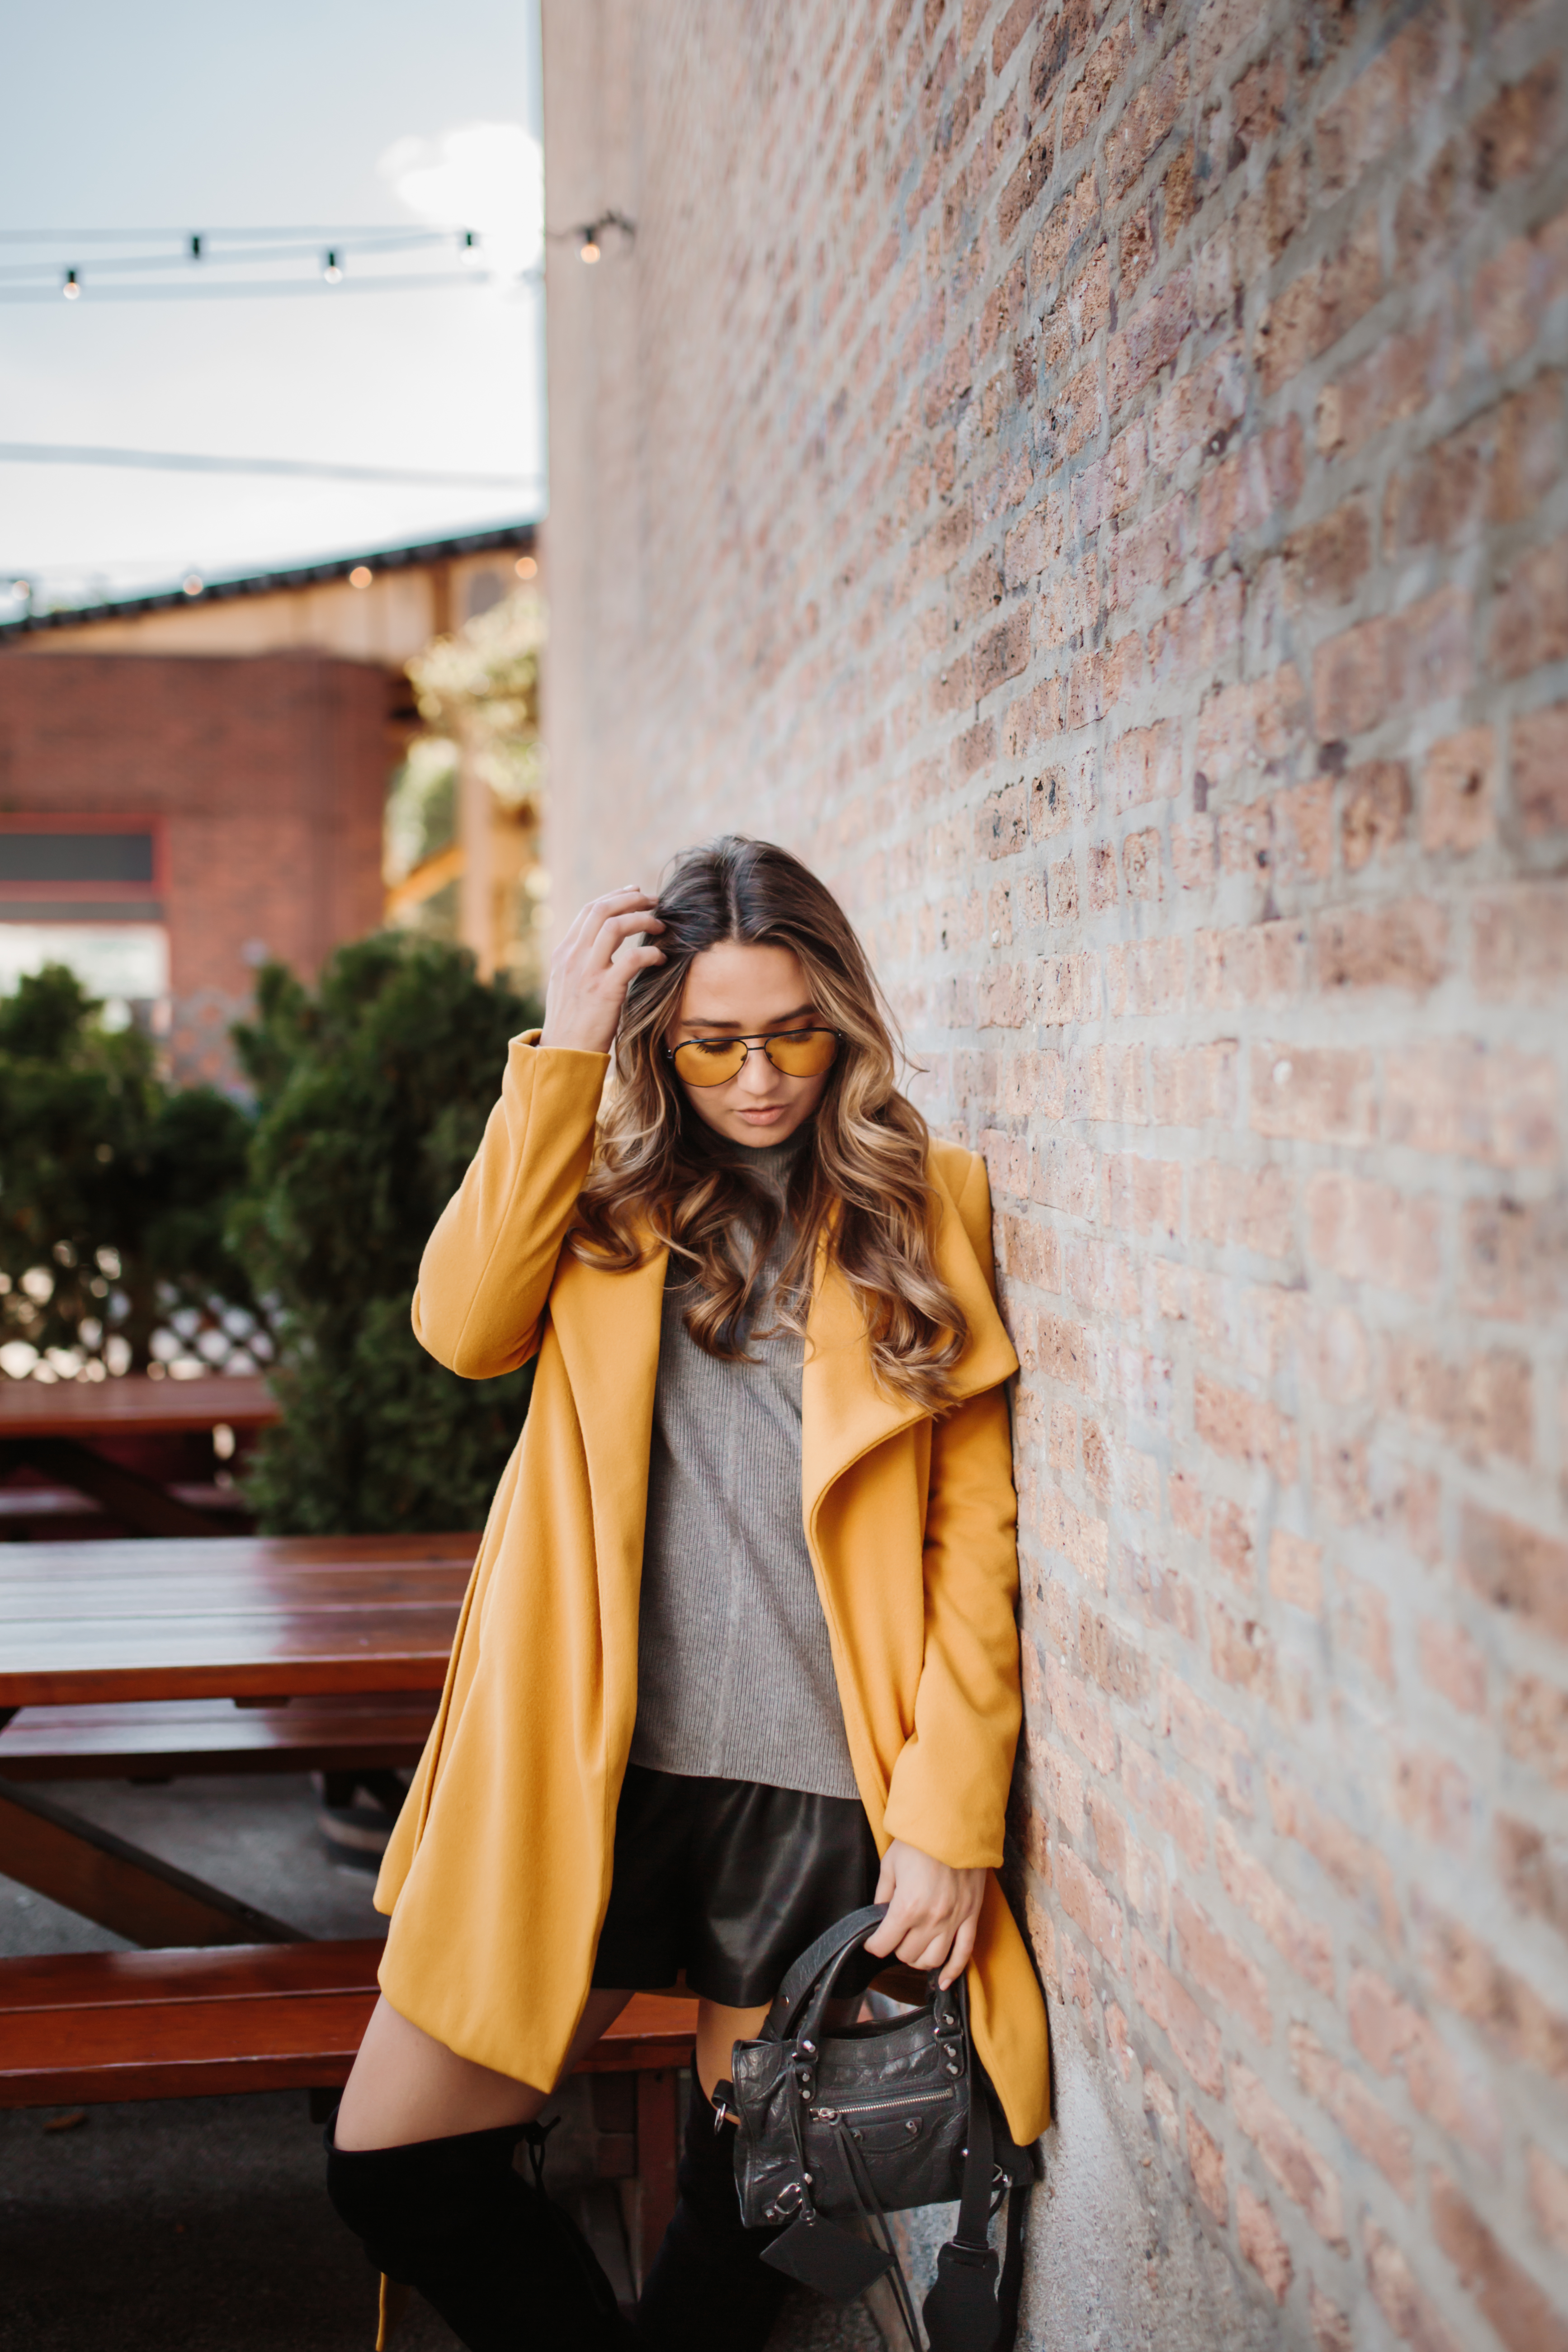 mvmt-sunglasses-maverick-yellow-mustard-coat-over-the-knee-boots-generation-bliss-turtleneck-sweater-fall-outfit-inspo